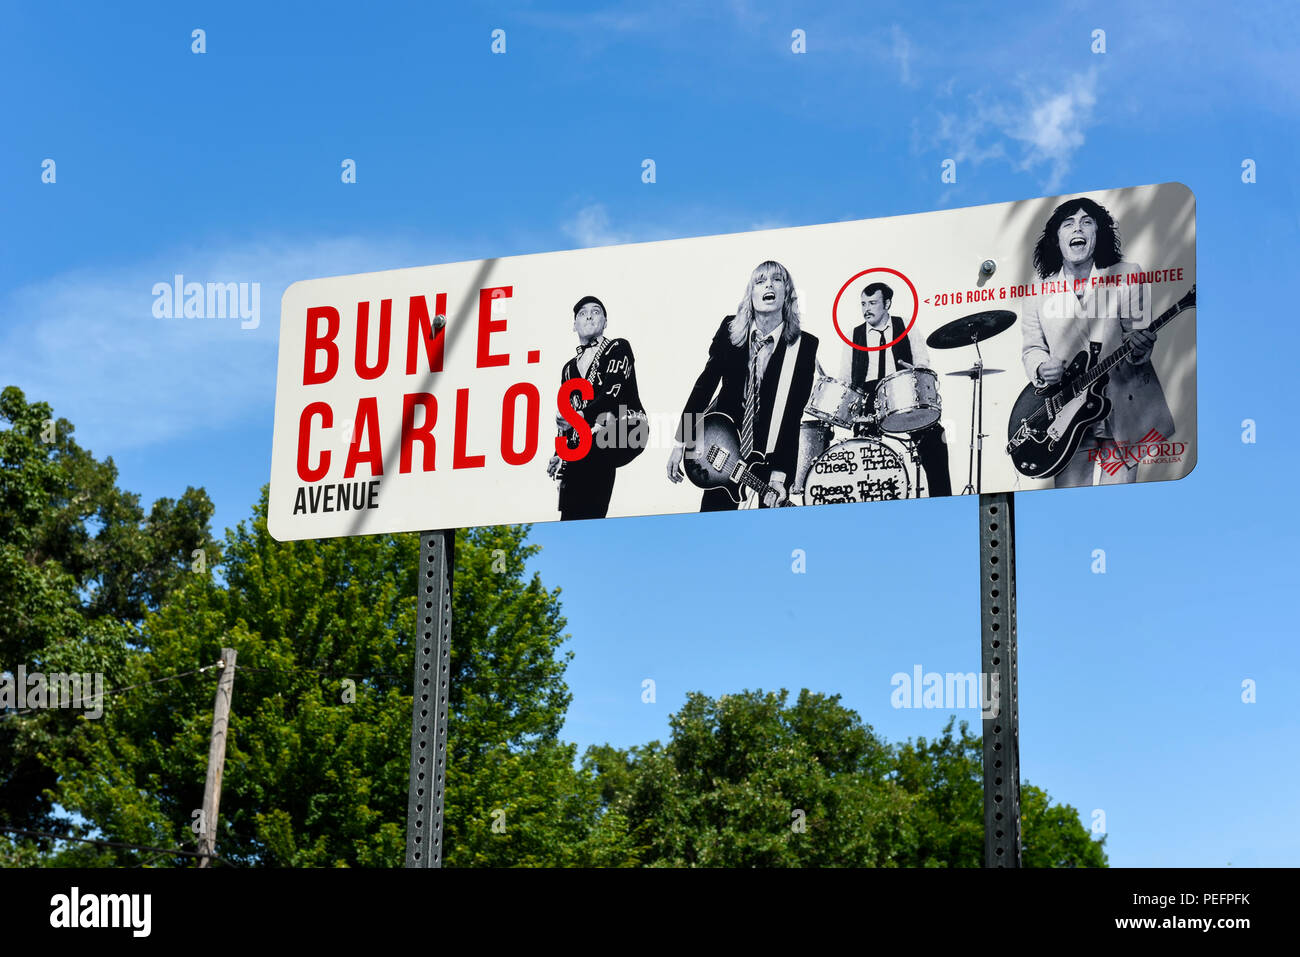 The Bun E Carlos of the Band Cheap Trick Sign in Rockford, Illinois - Stock Image